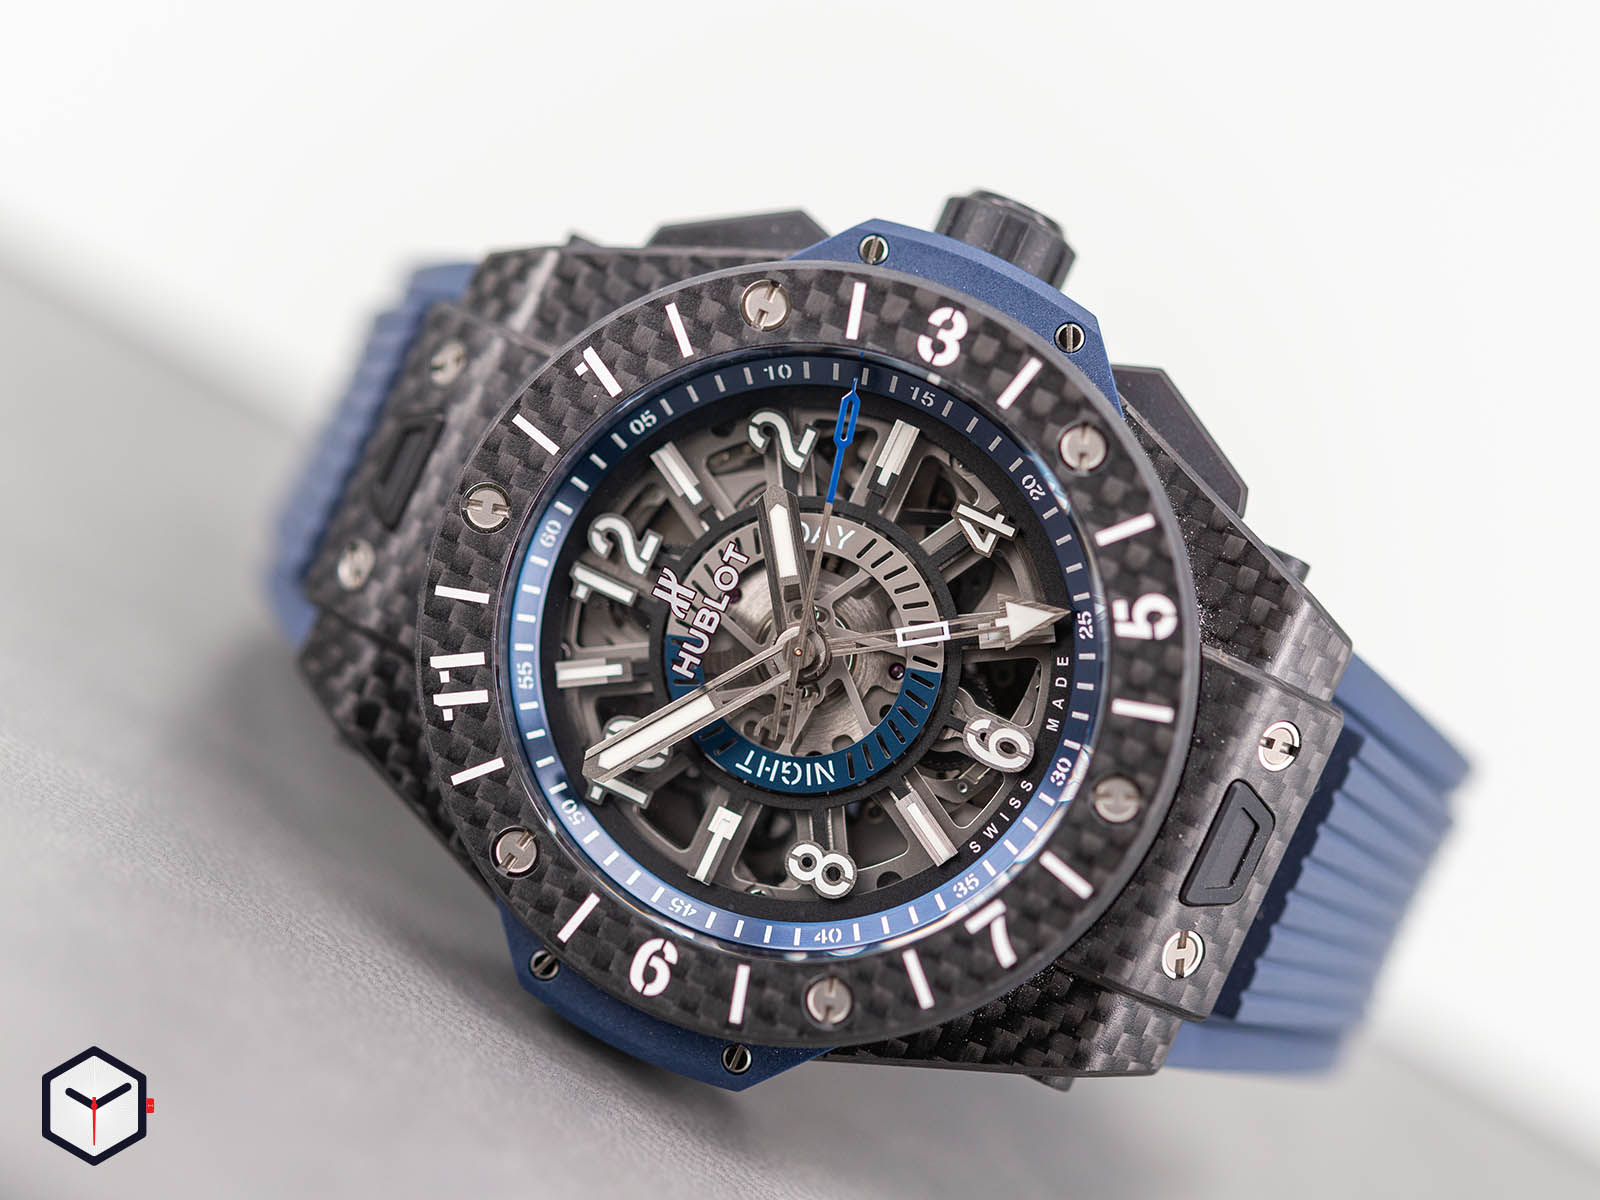 471-qx-7127-rx-hublot-big-bang-unico-gmt-carbon-1.jpg